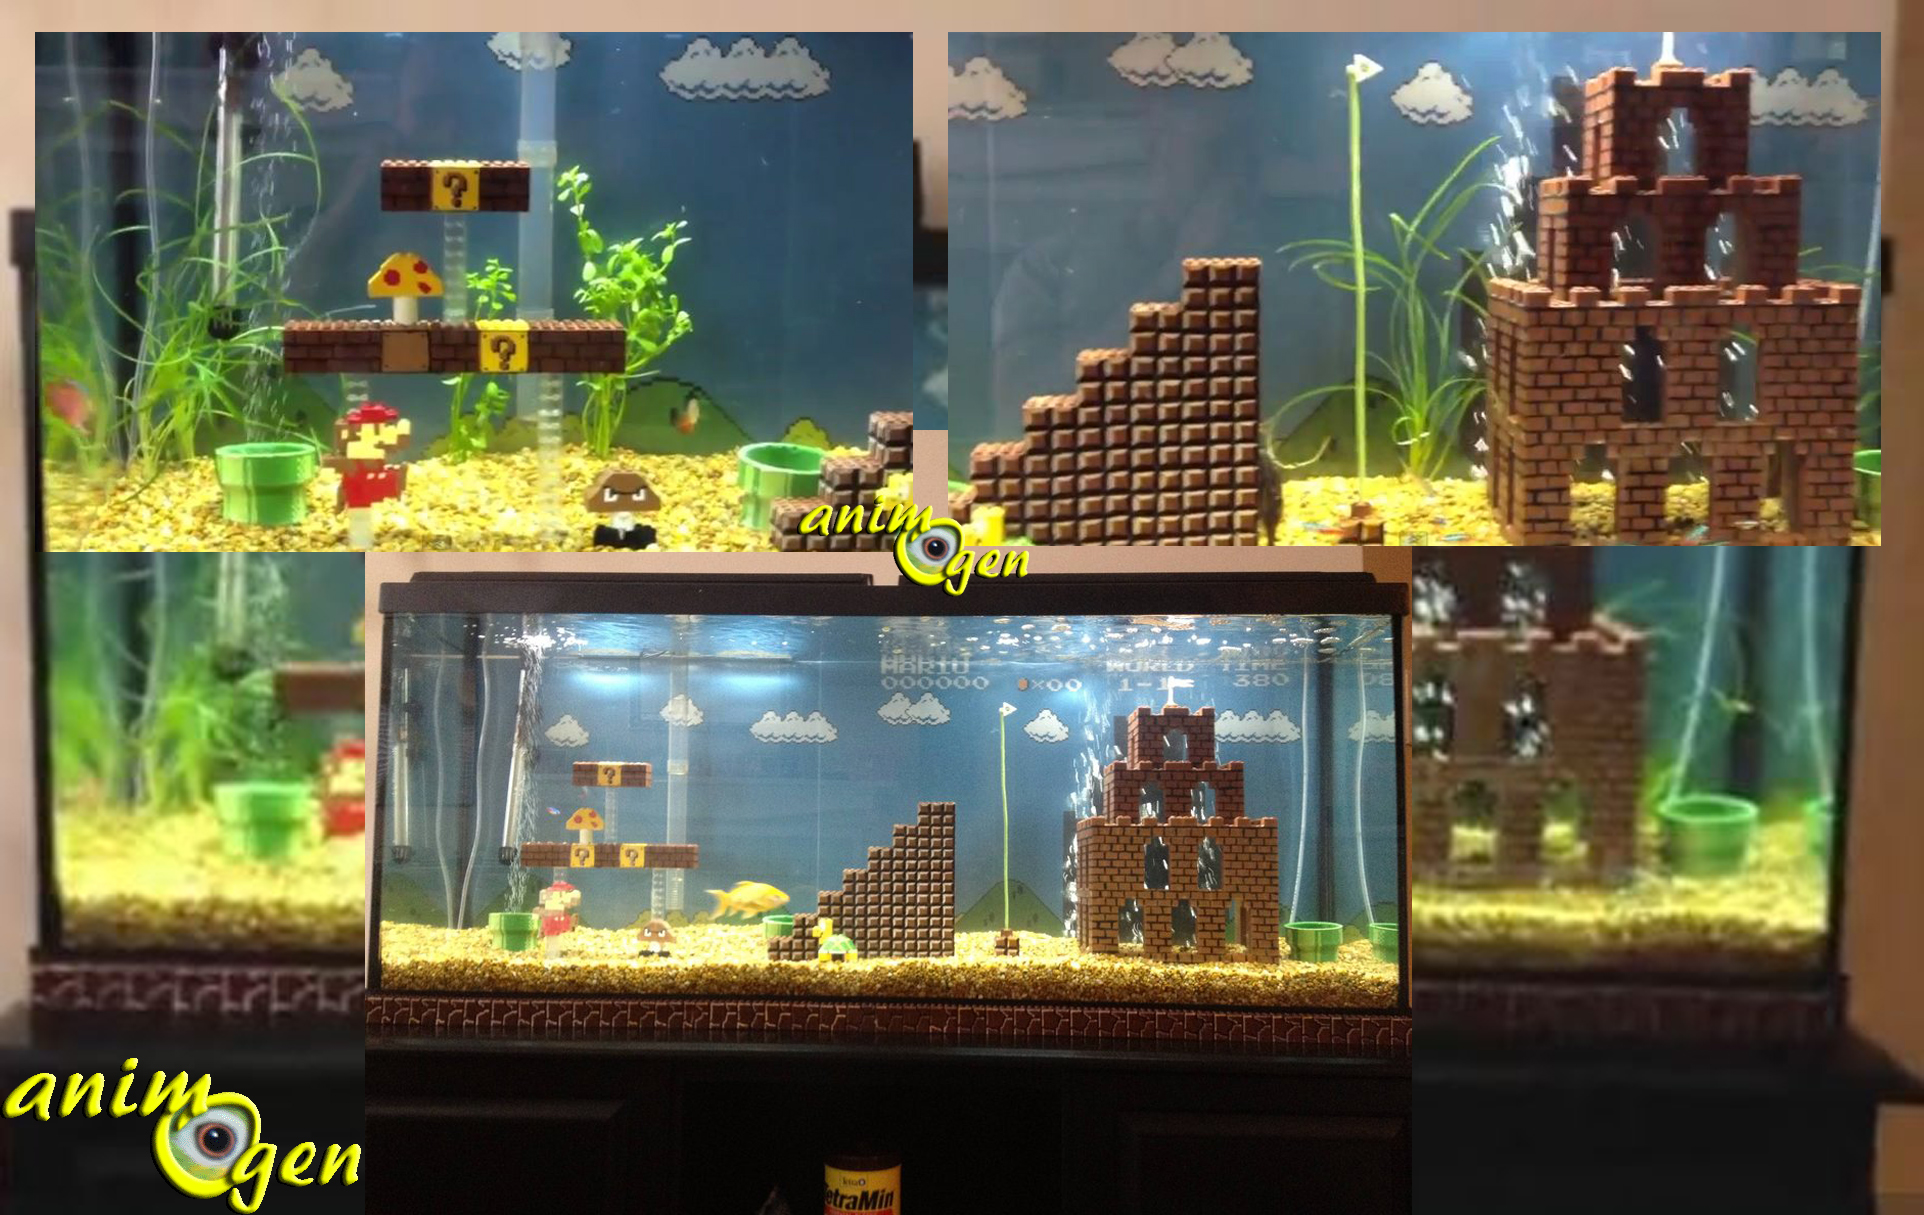 l univers de mario bros dans un aquarium pour les fans de jeux vid os animogen. Black Bedroom Furniture Sets. Home Design Ideas